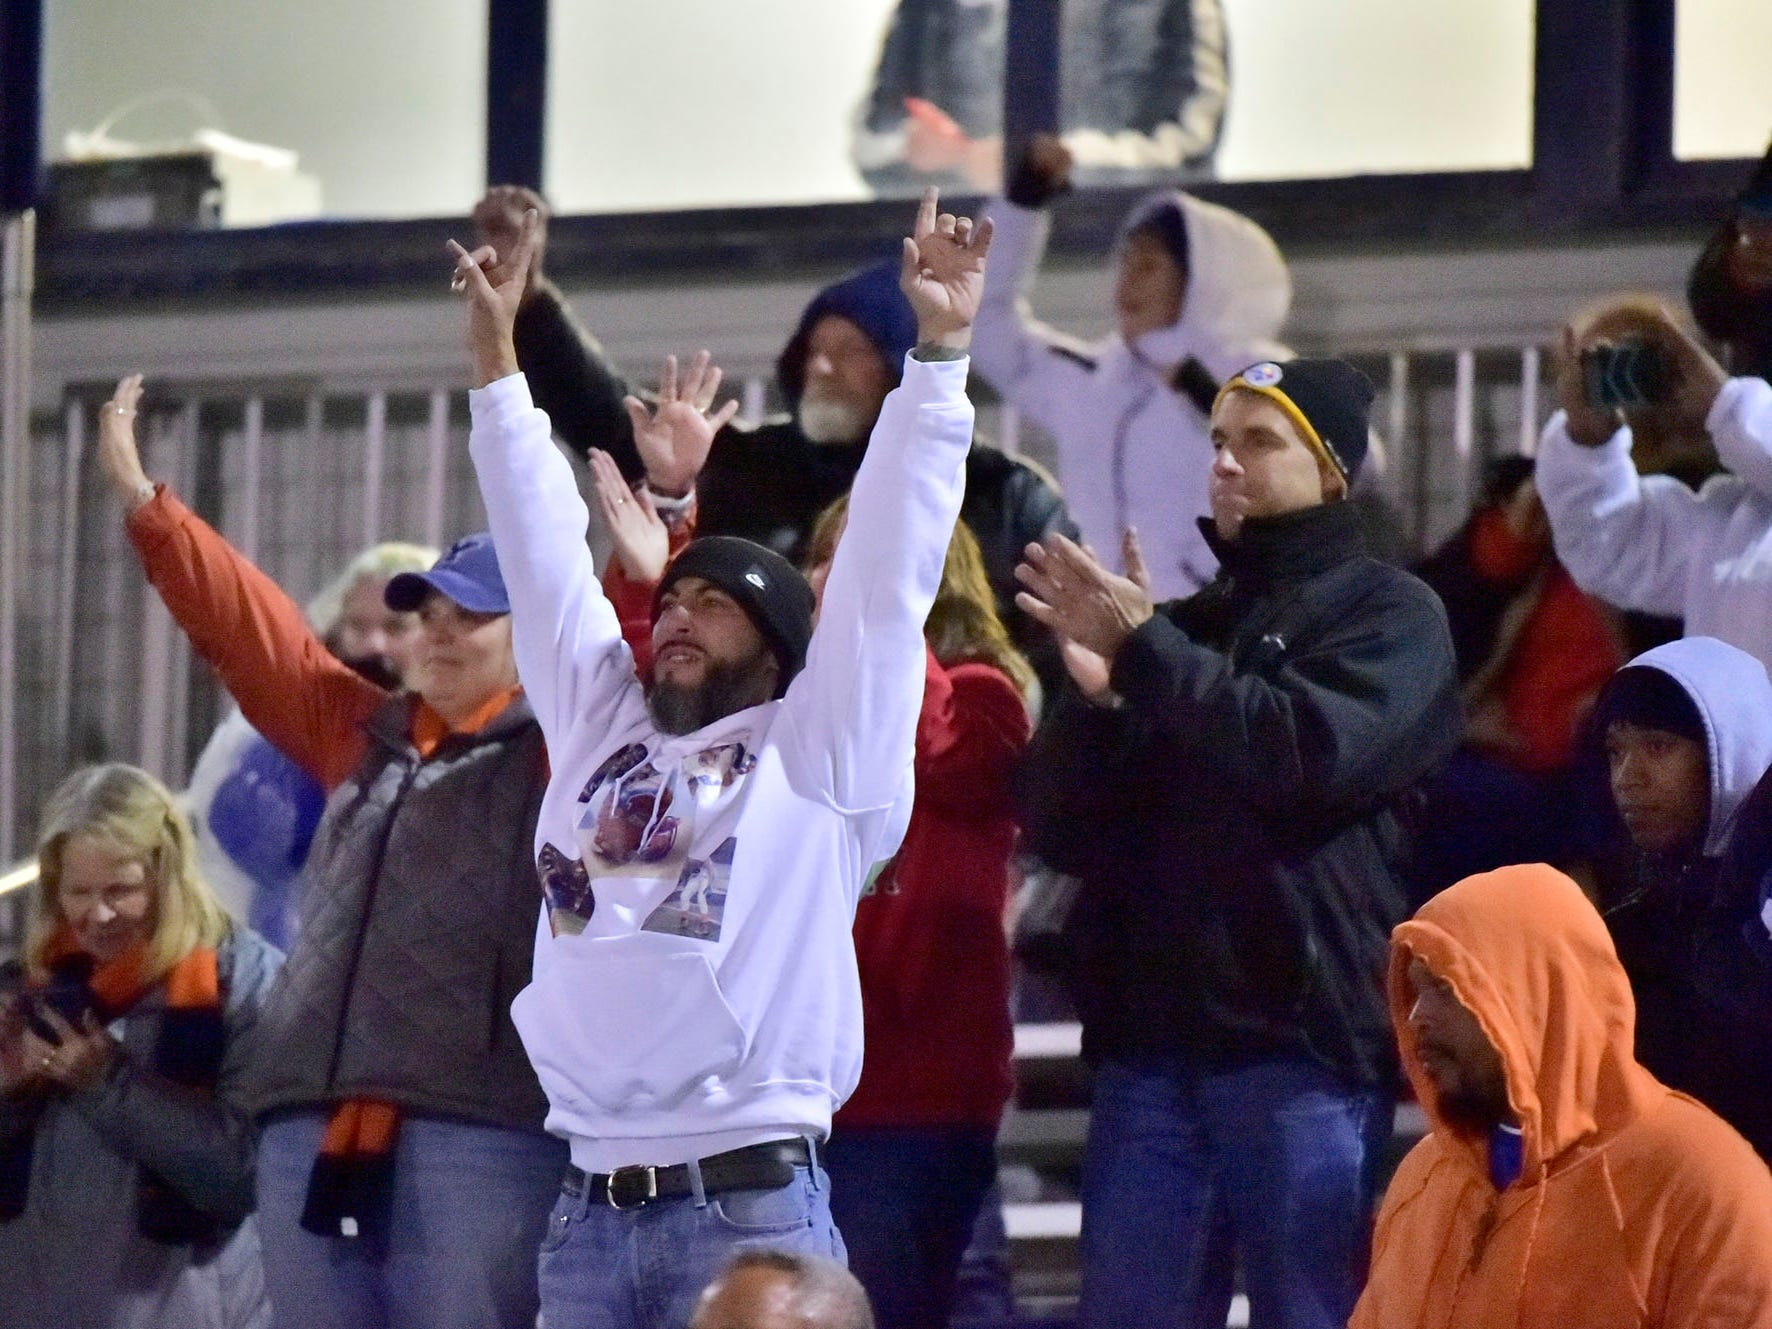 York High fans celebrate. York High defeated Shippensburg 22-6  in the the quarterfinals of PIAA 5A District 3 football playoffs on Friday, Nov. 9, 2018 at Trojan Stadium.